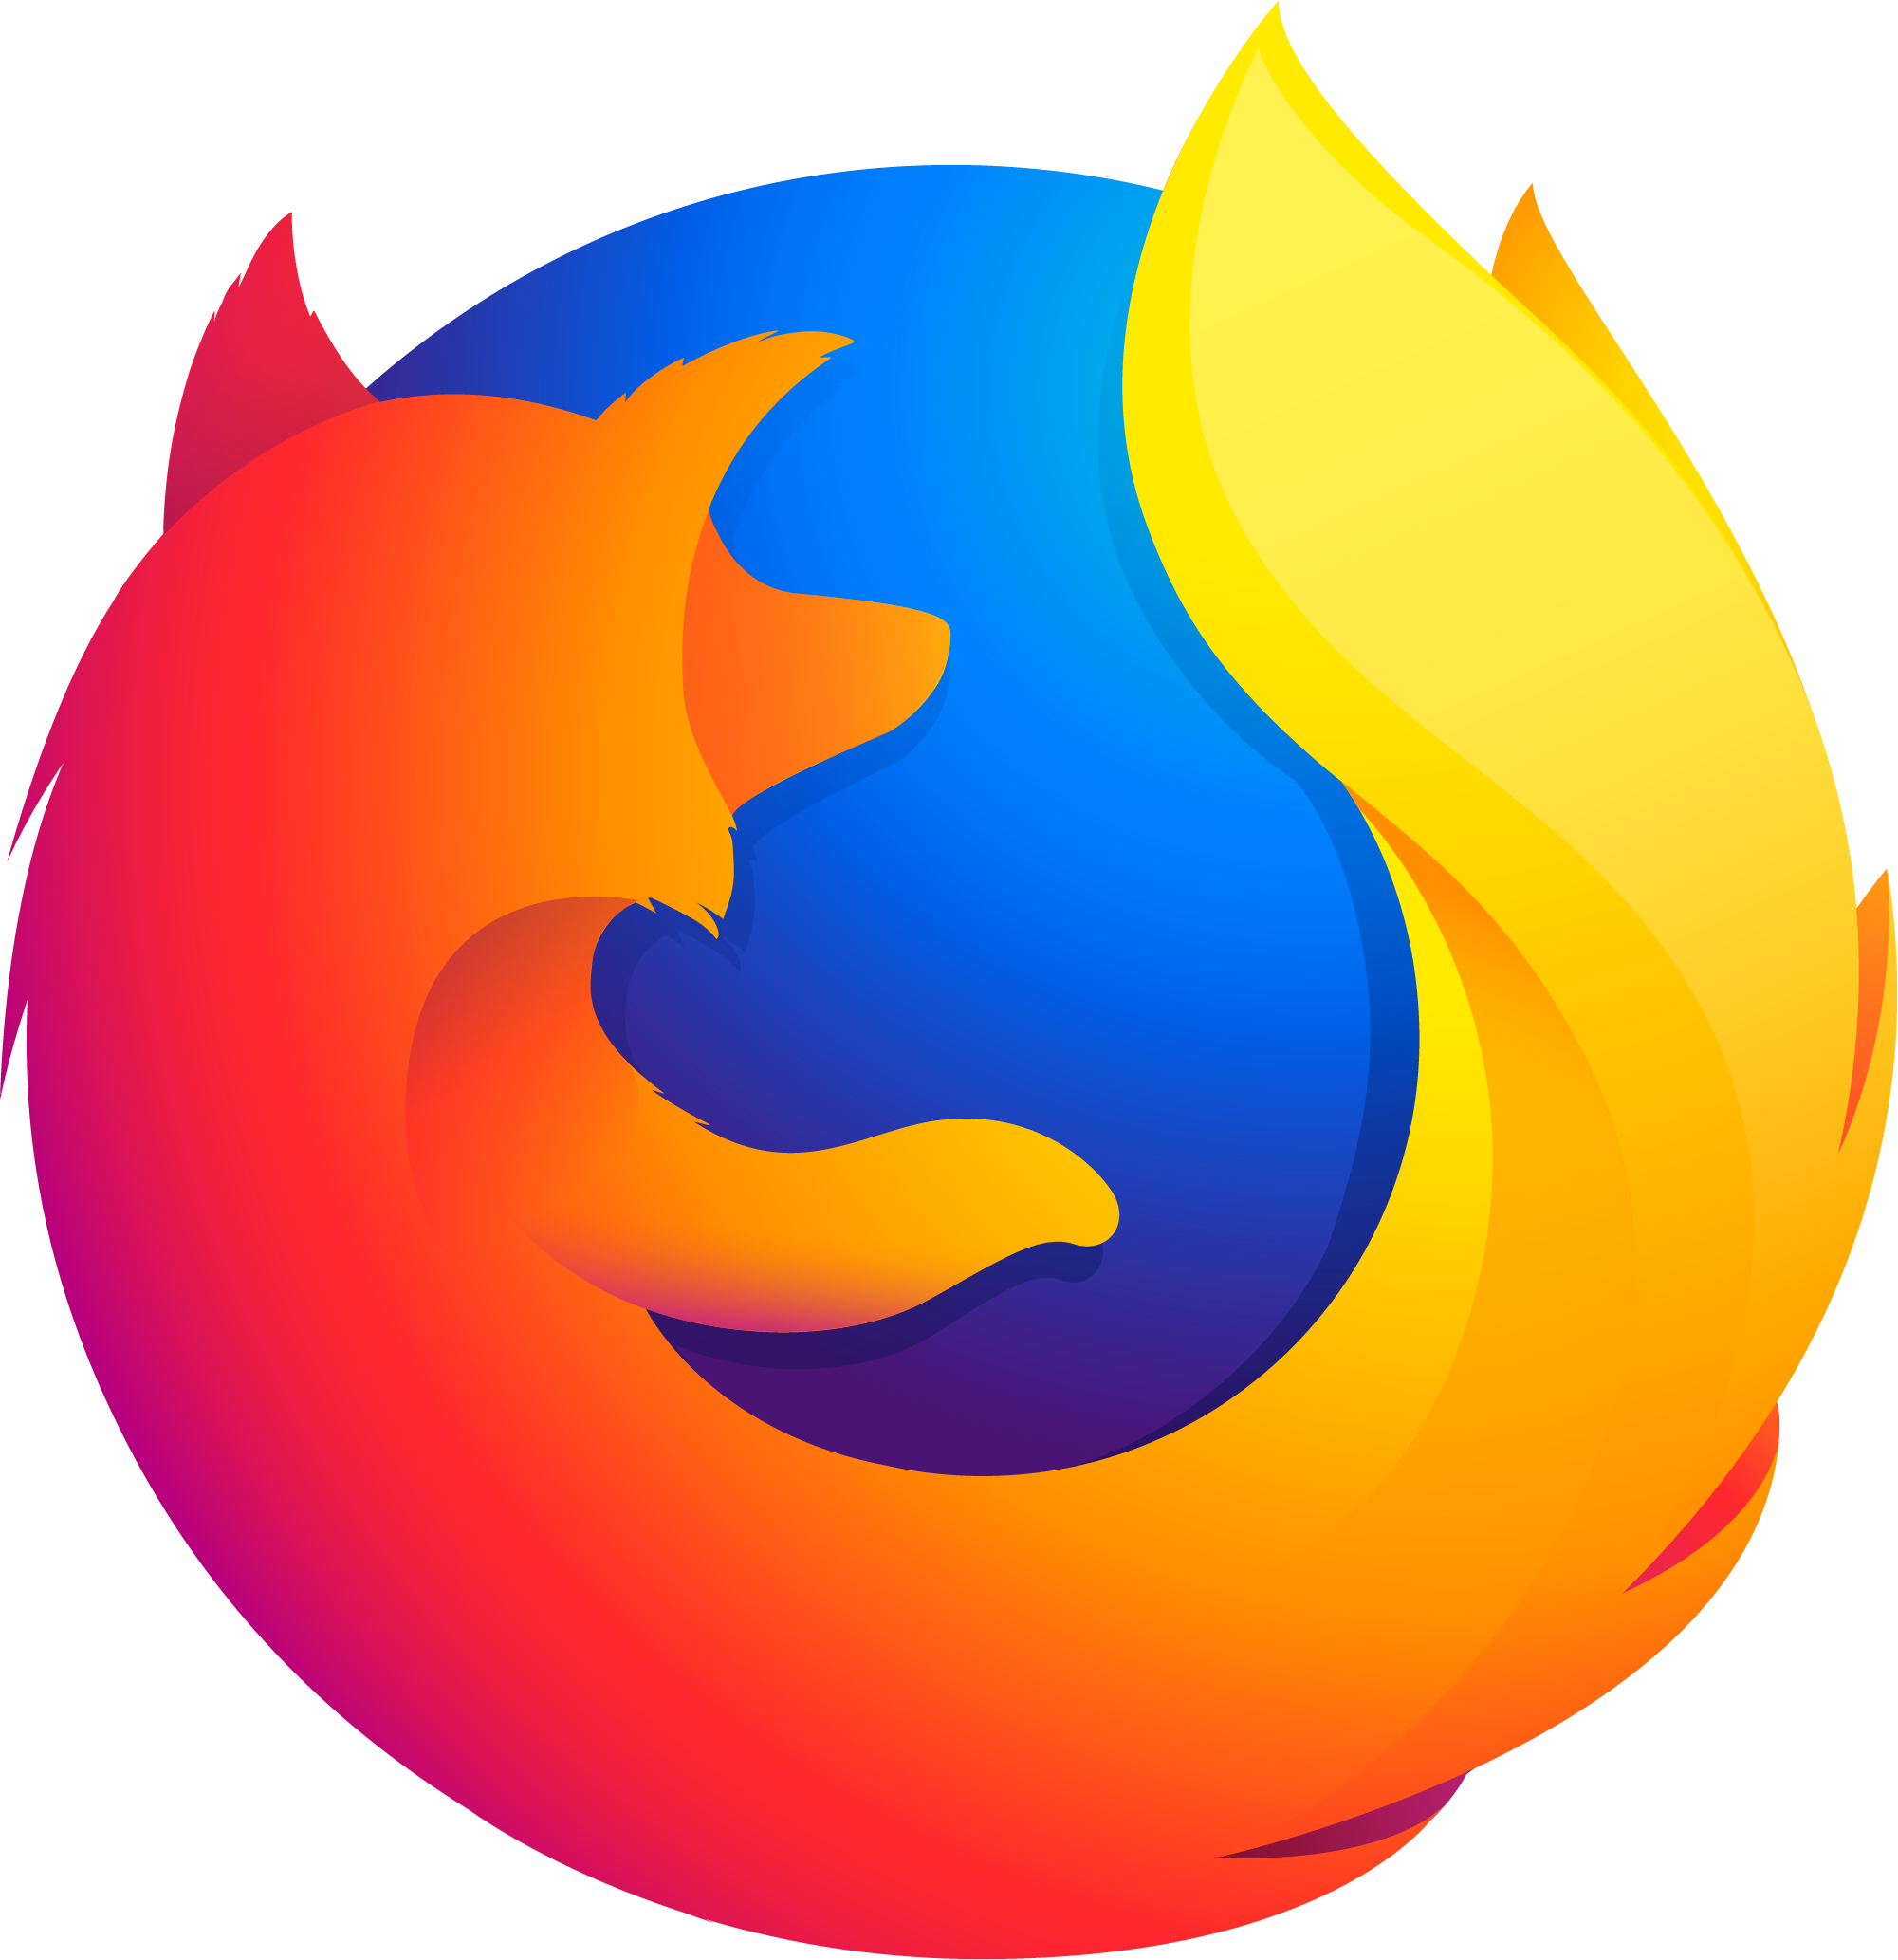 Https www startpage com graphics firefox_arrow clipart png royalty free Make your Firefox browser a privacy superpower with these ... png royalty free